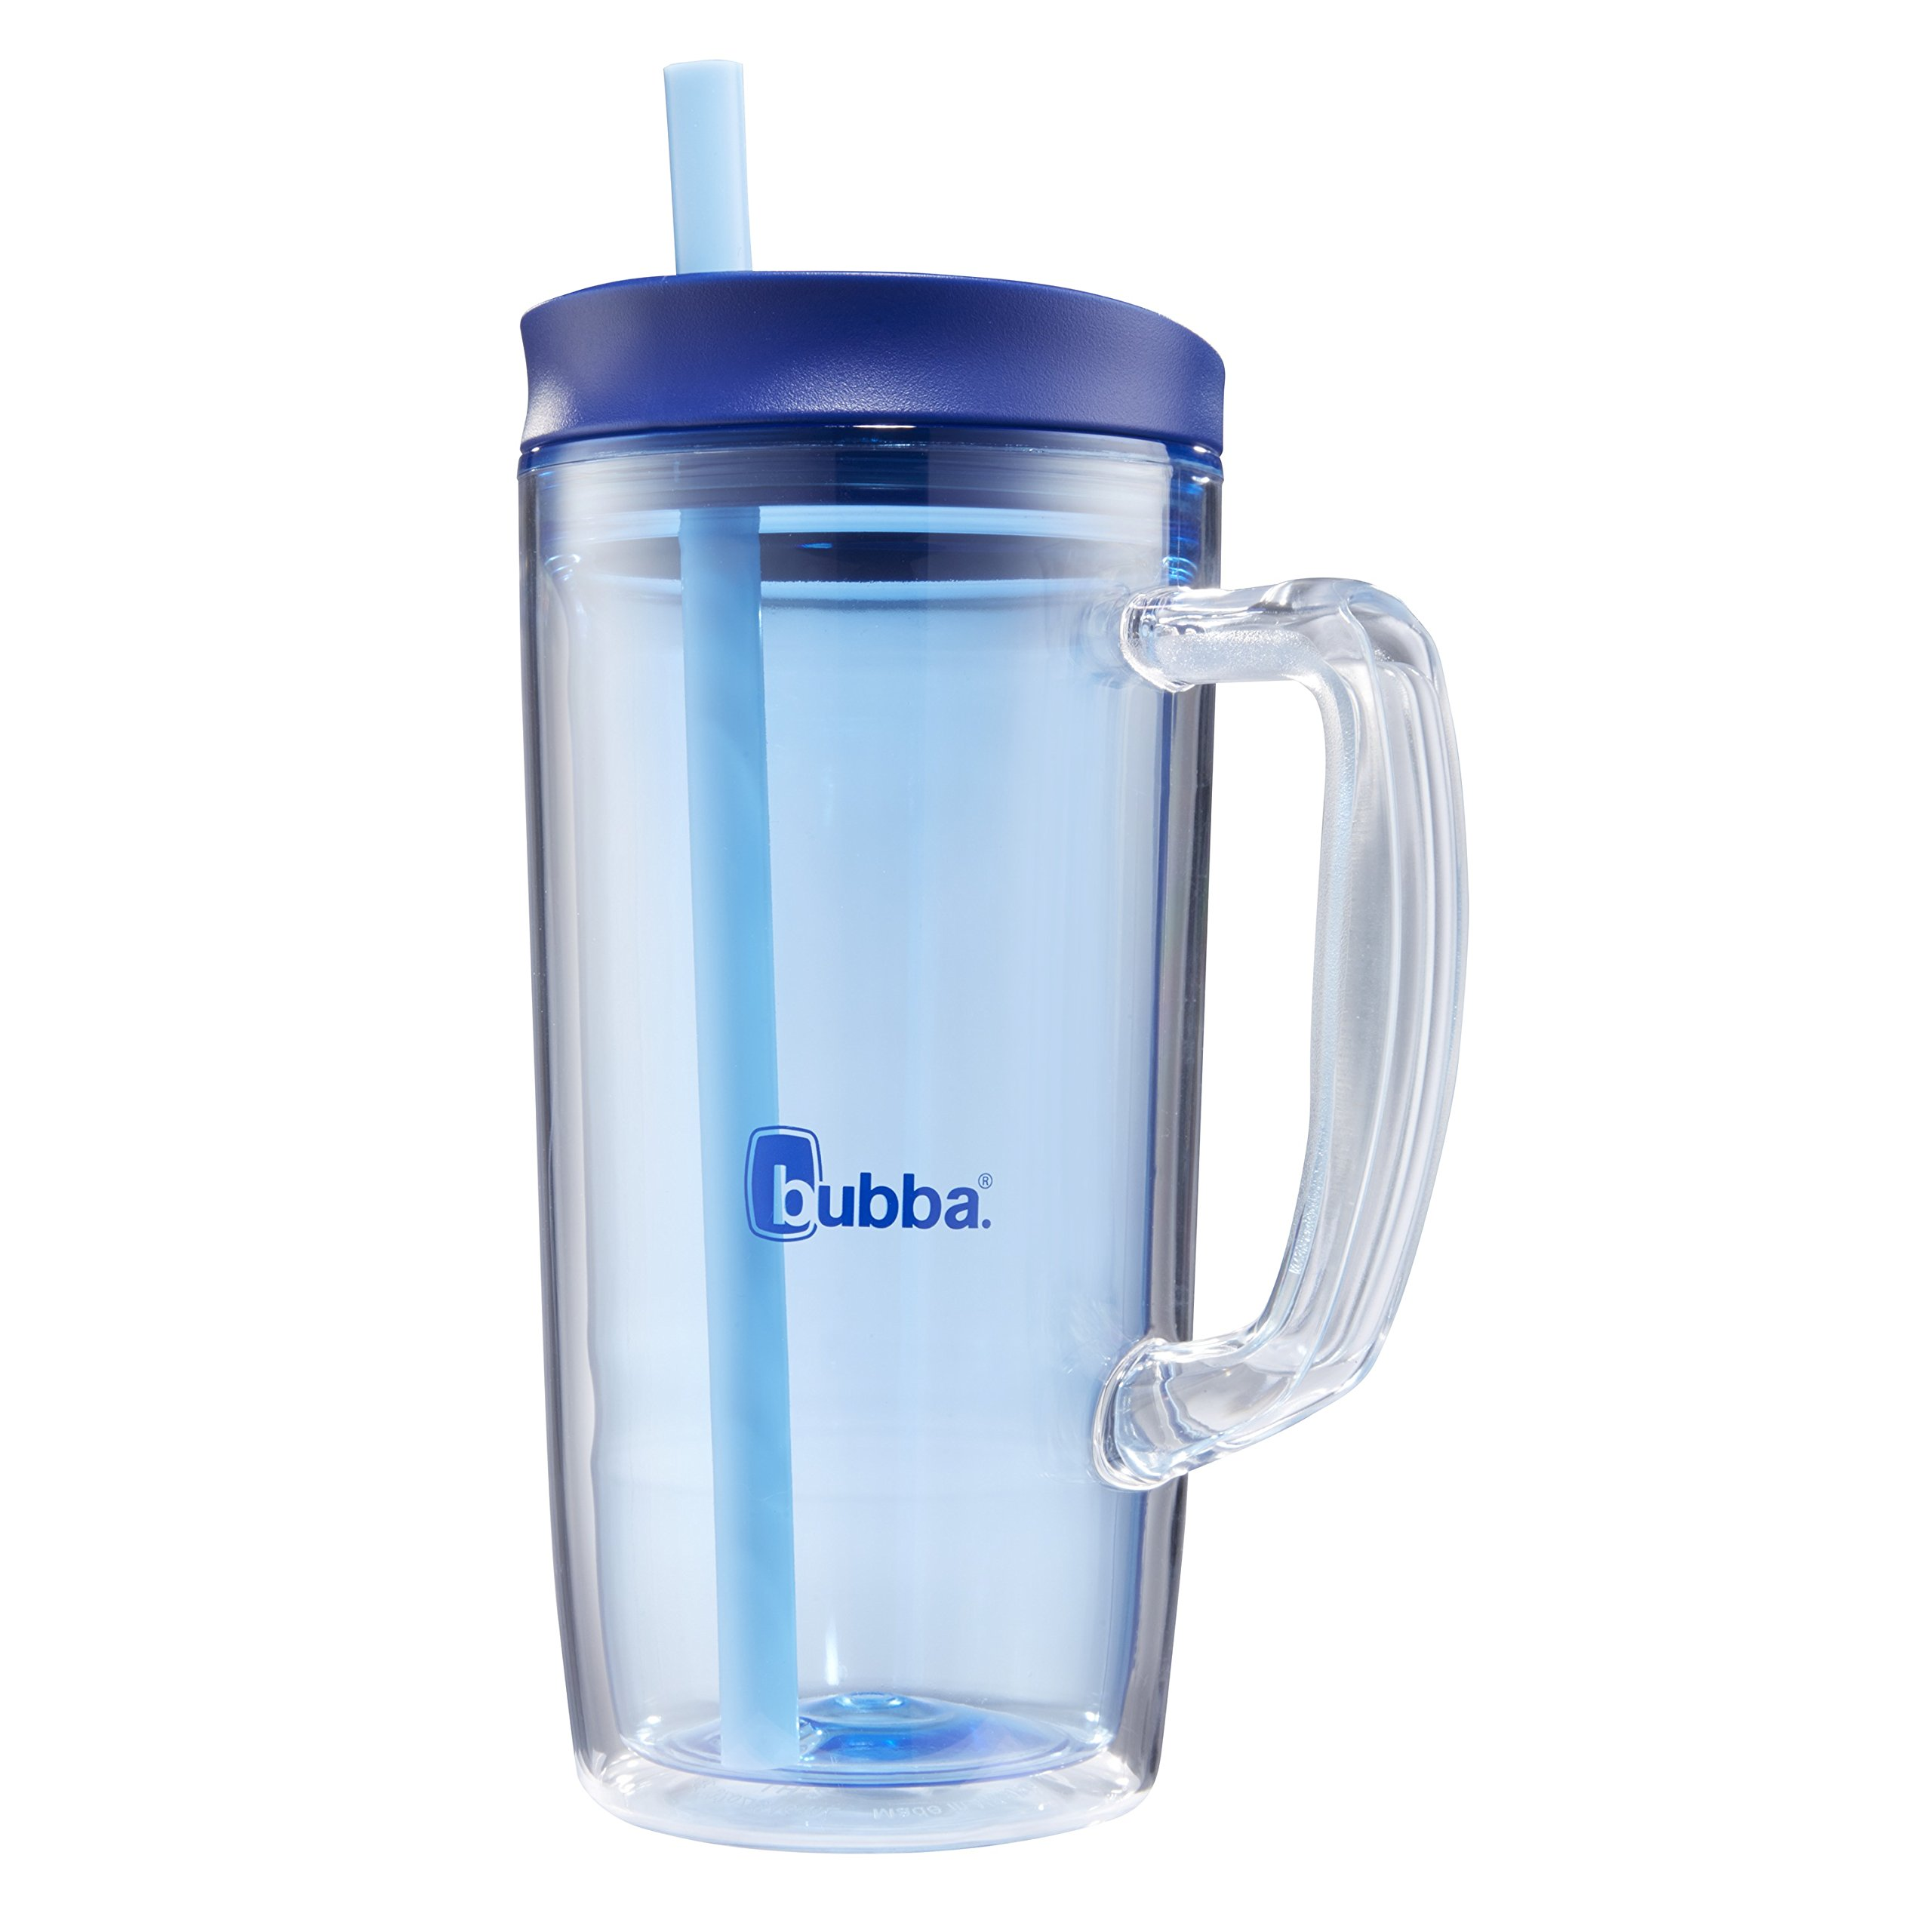 Bubba Envy Double Wall Insulated Straw Tumbler with Handle, 32 oz, Blue by BUBBA BRANDS (Image #3)